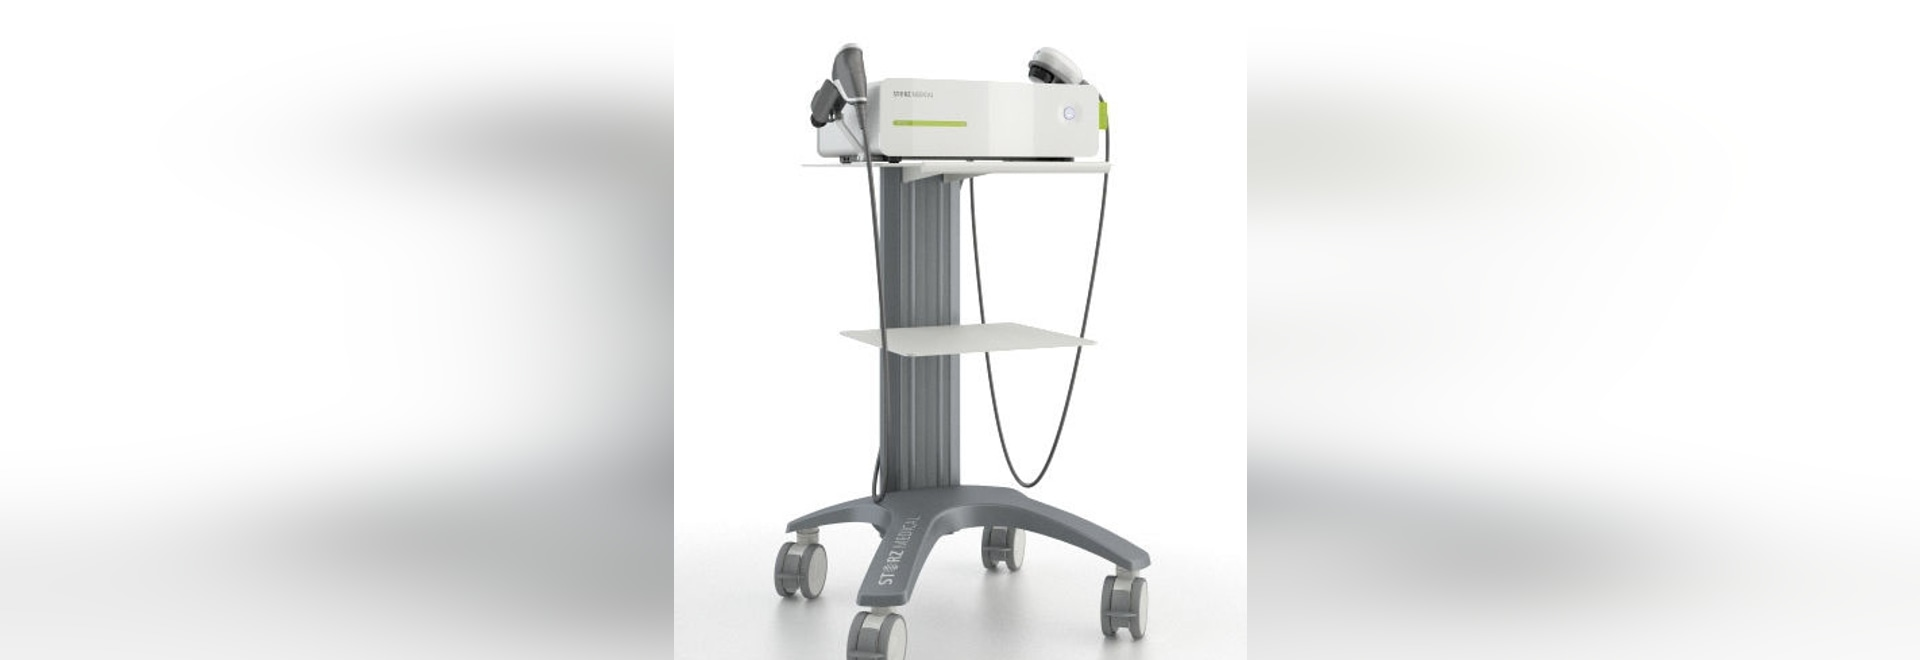 "MASTERPULS ""ultra"" line by Storz Medical - Advanced radial shock wave therapy"